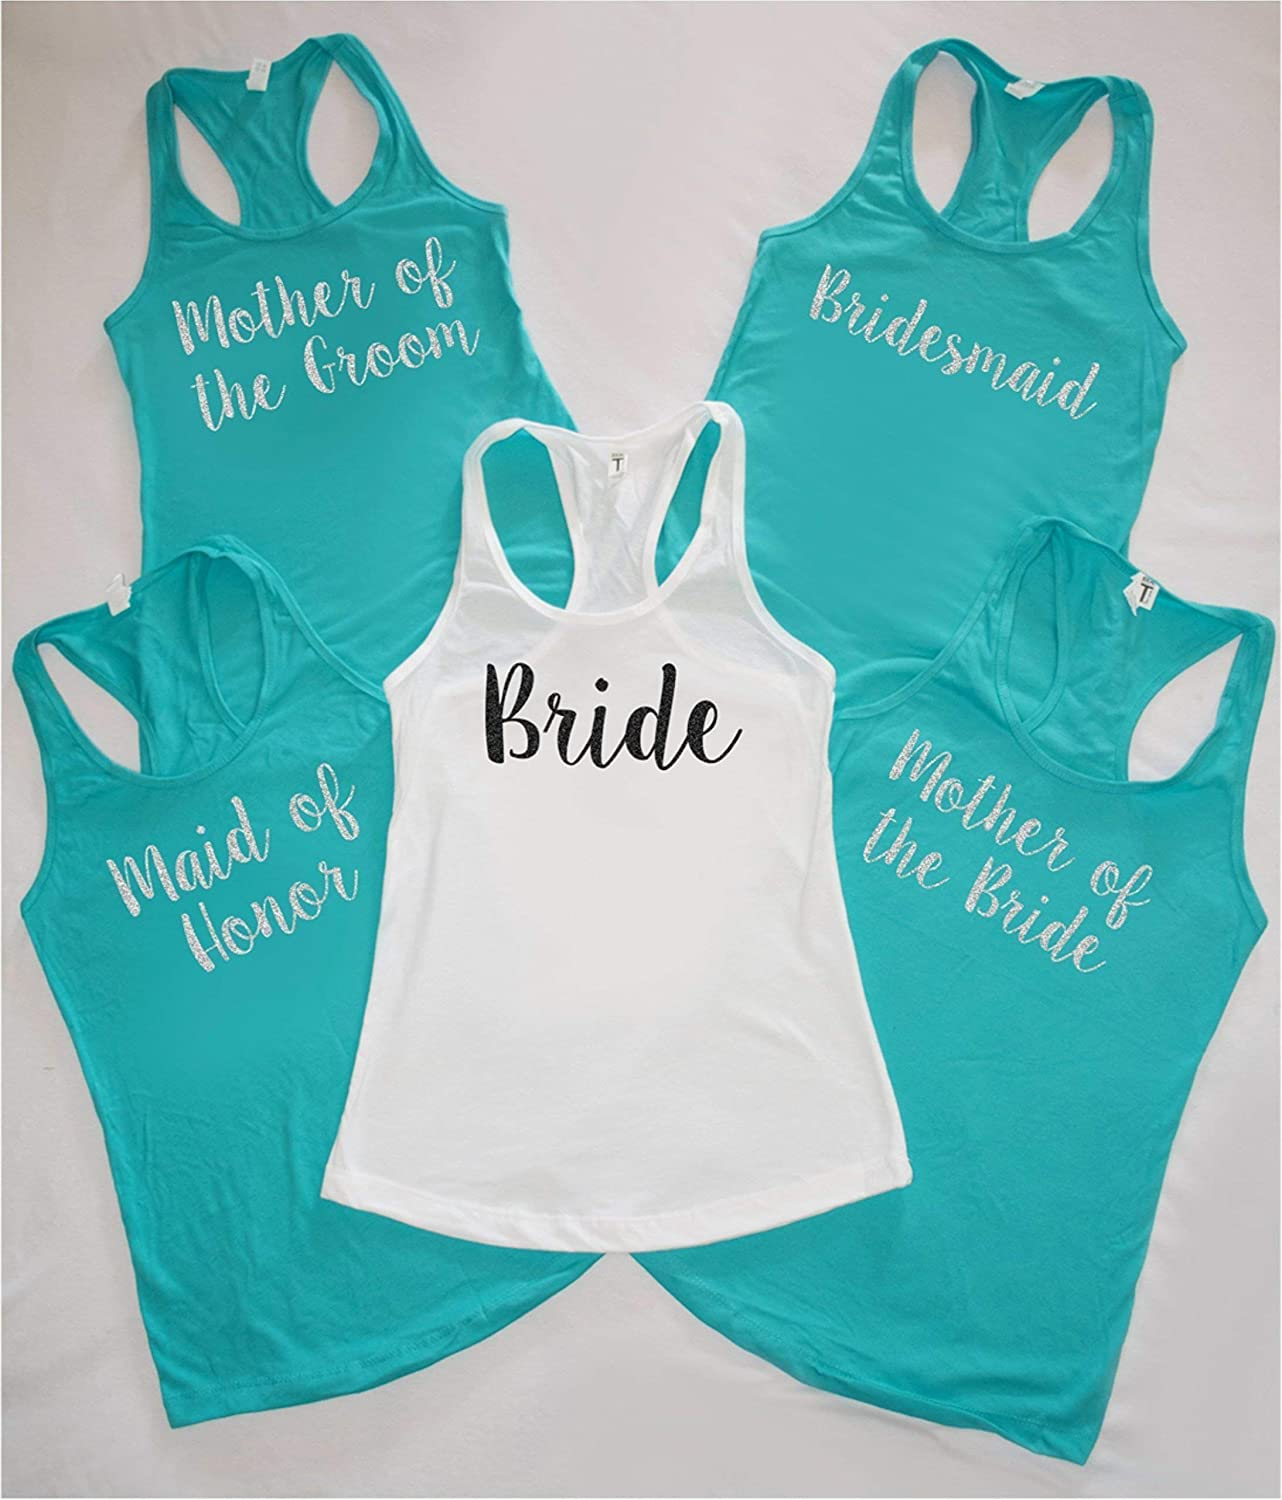 7df4beba3fb61 These super cute matching bachelorette tanks are just what you need to make  your night out one to remember!! Well maybe not